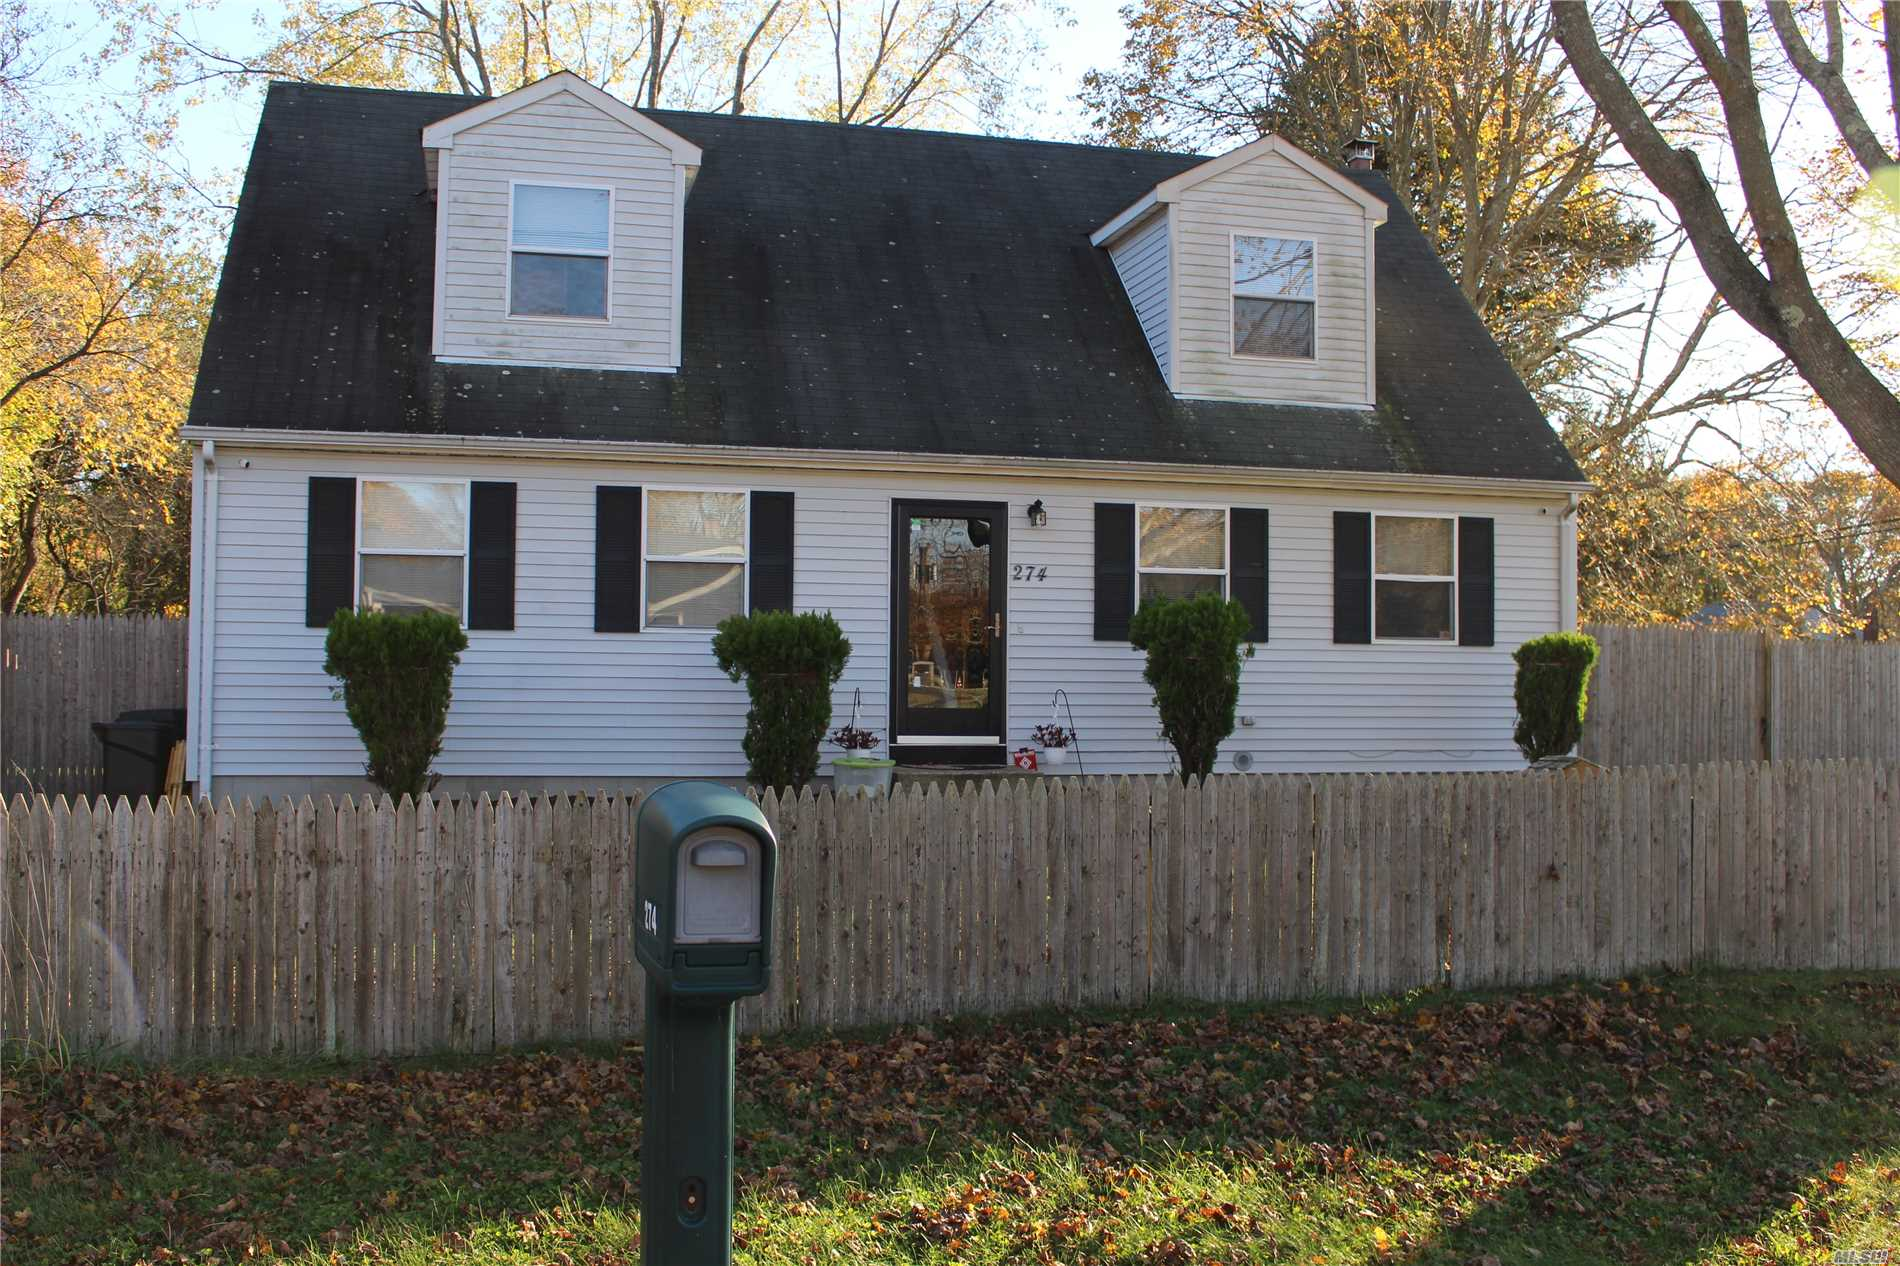 Photo of home for sale at 274 Hampton Ave, East Patchogue NY